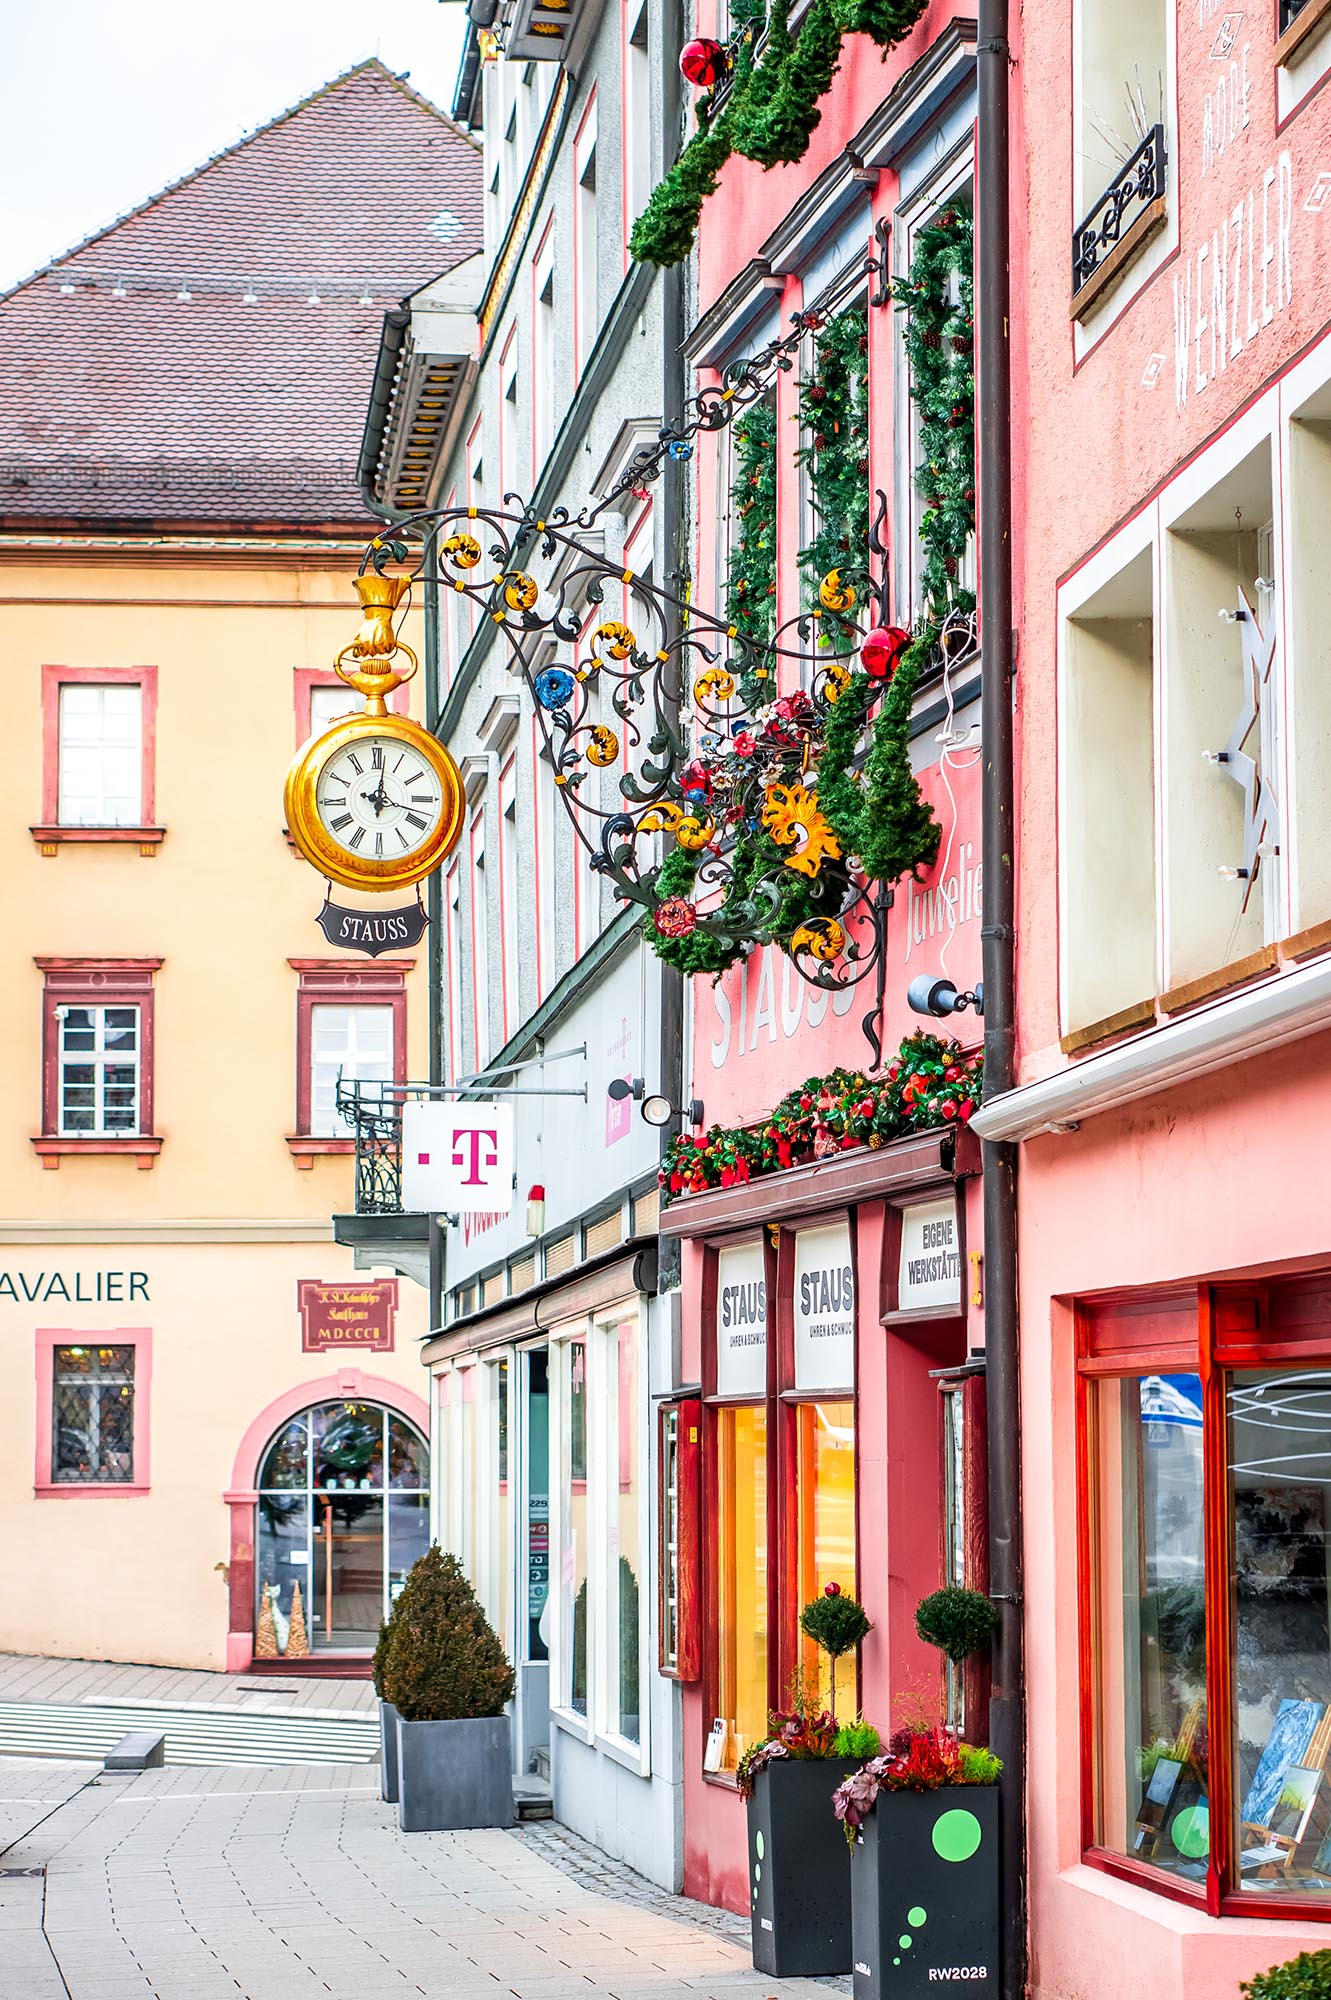 Germany Clock Rottweil Town город Германия Deutschland